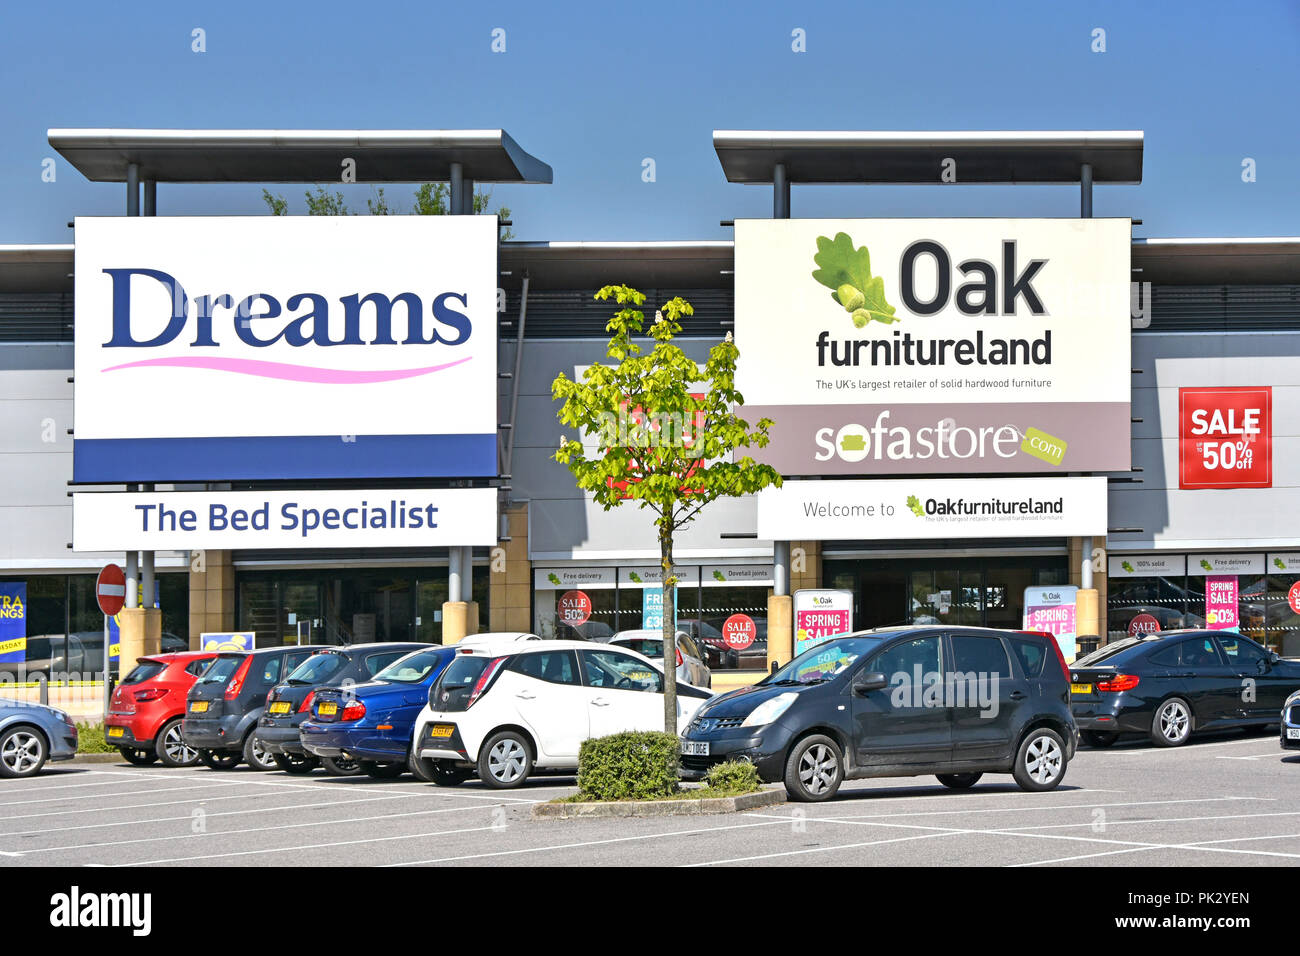 Dreams bed & Oak furniture sofa store sign for home furniture shopping free car park for shoppers at Lakeside retail park Thurrock Essex England UK - Stock Image